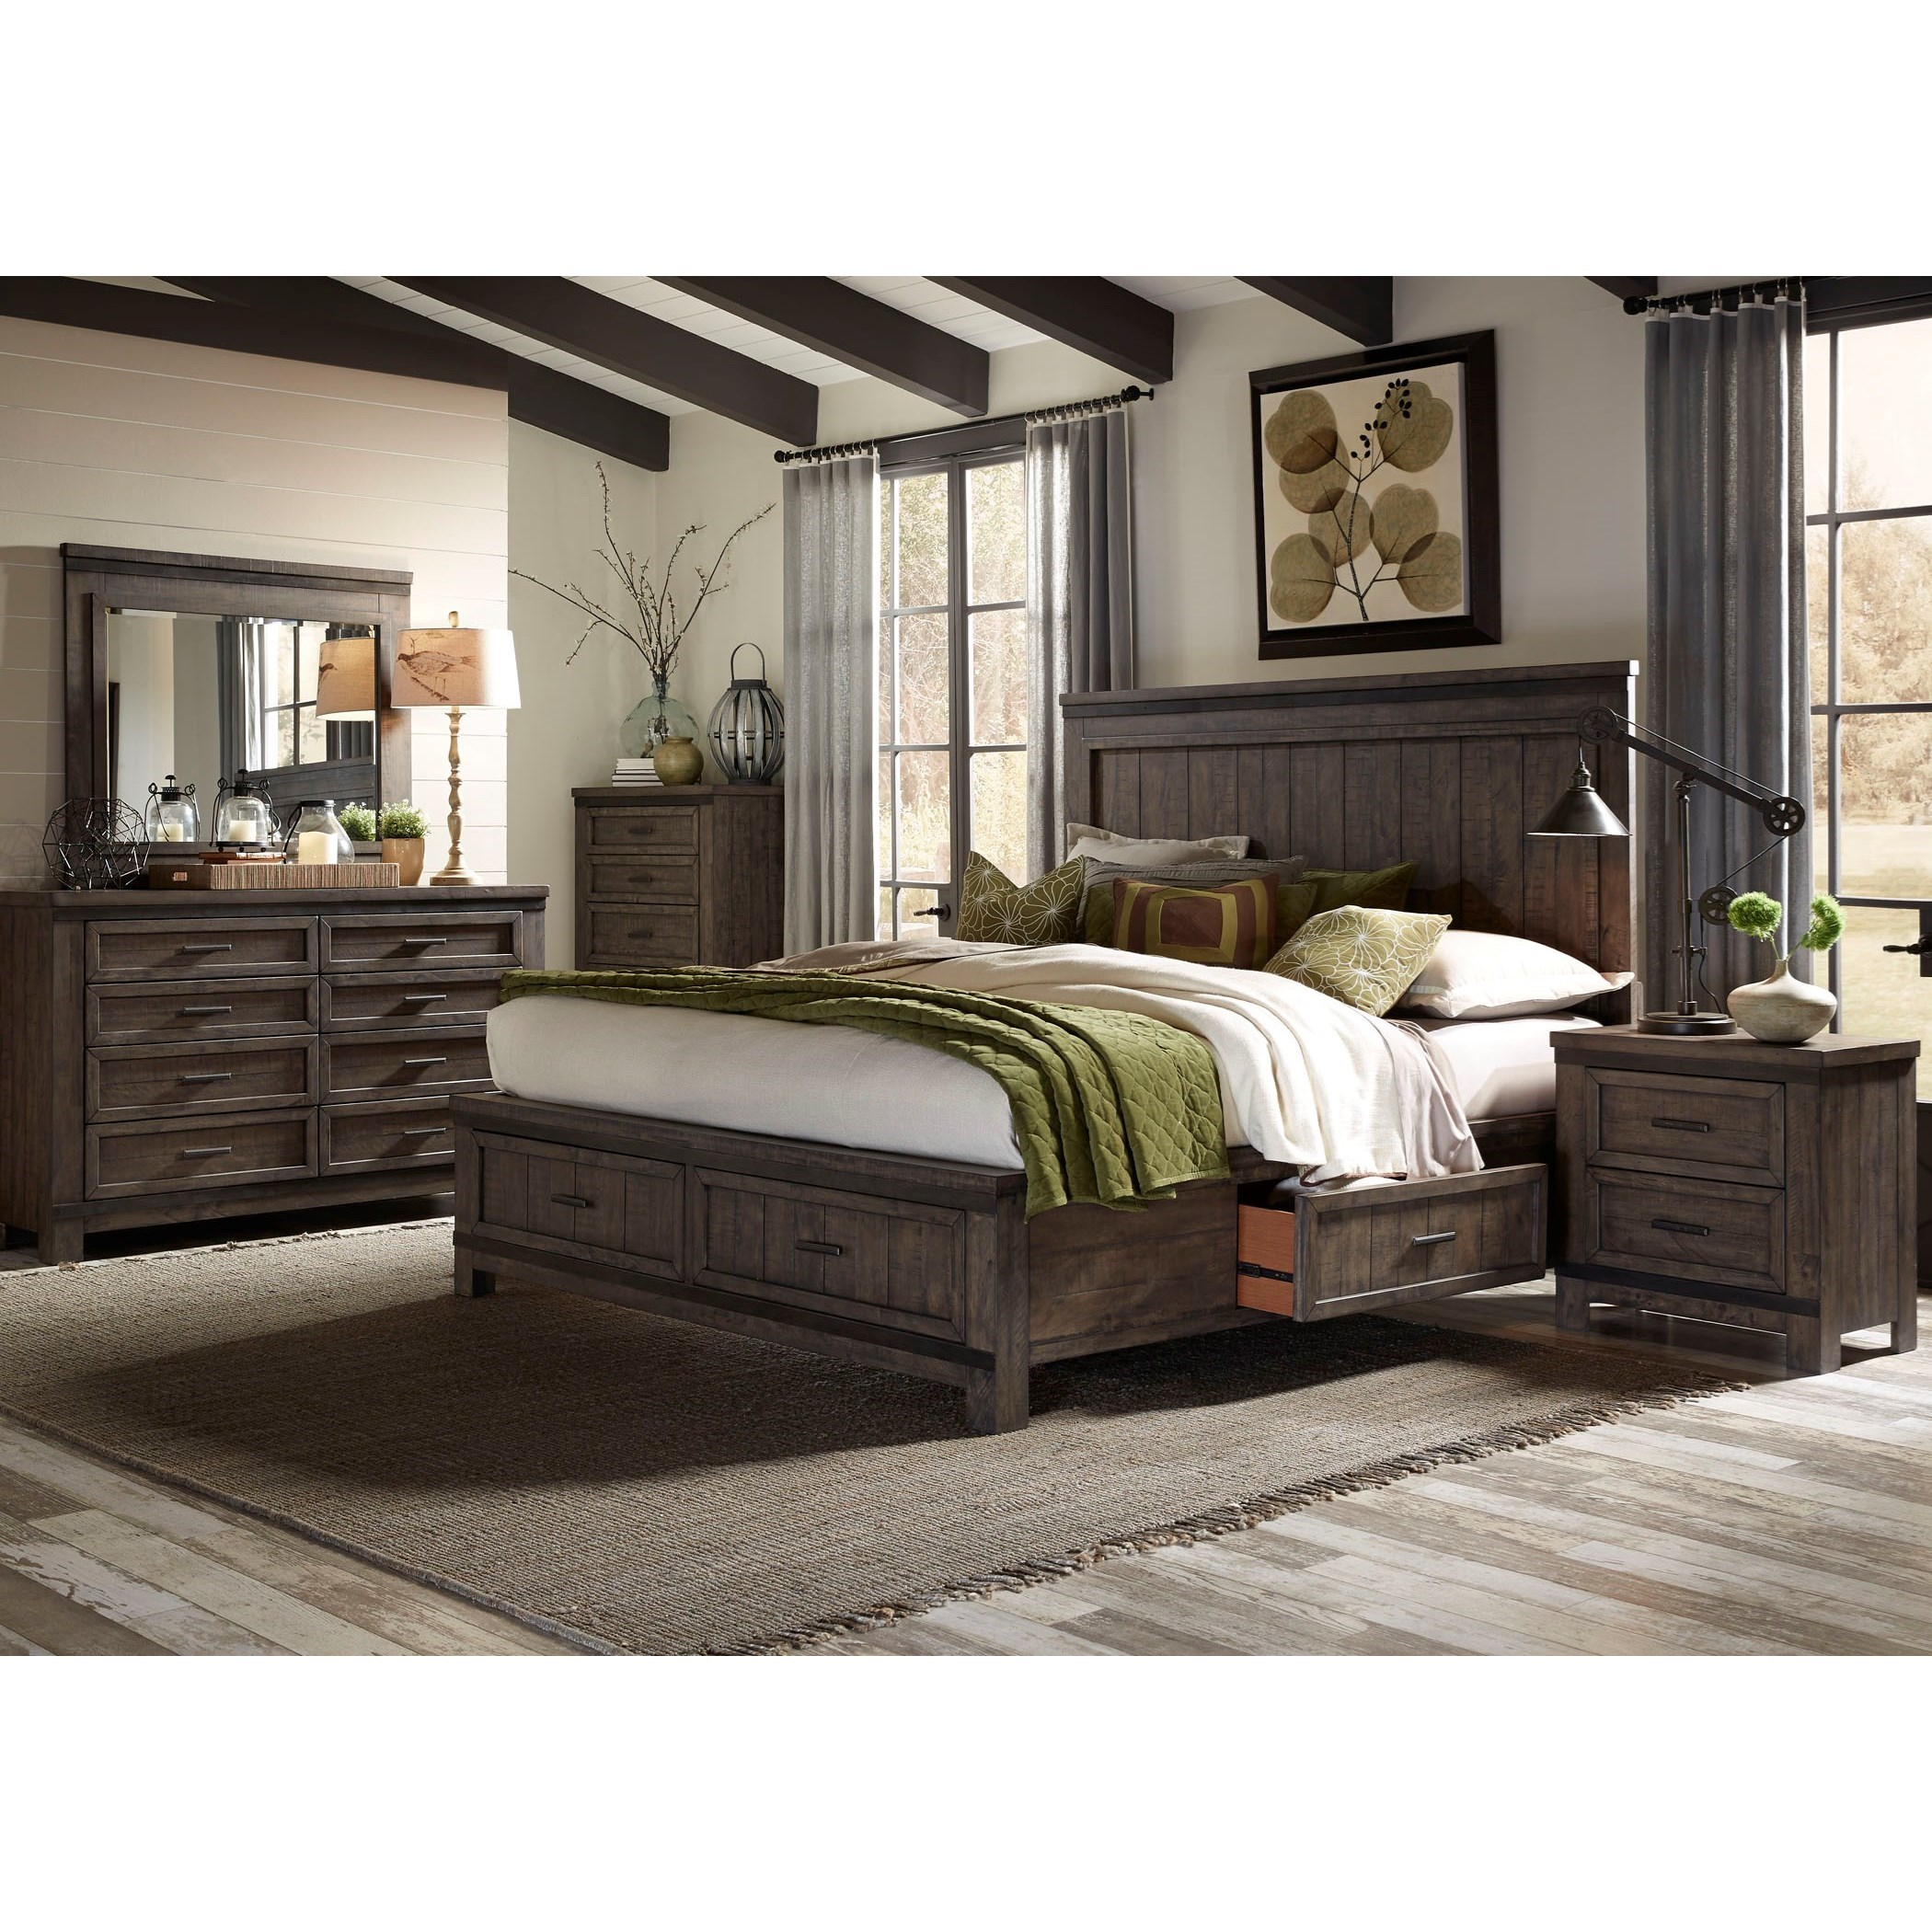 Thornwood Hills Queen Bedroom Group by Liberty Furniture at Lynn's Furniture & Mattress